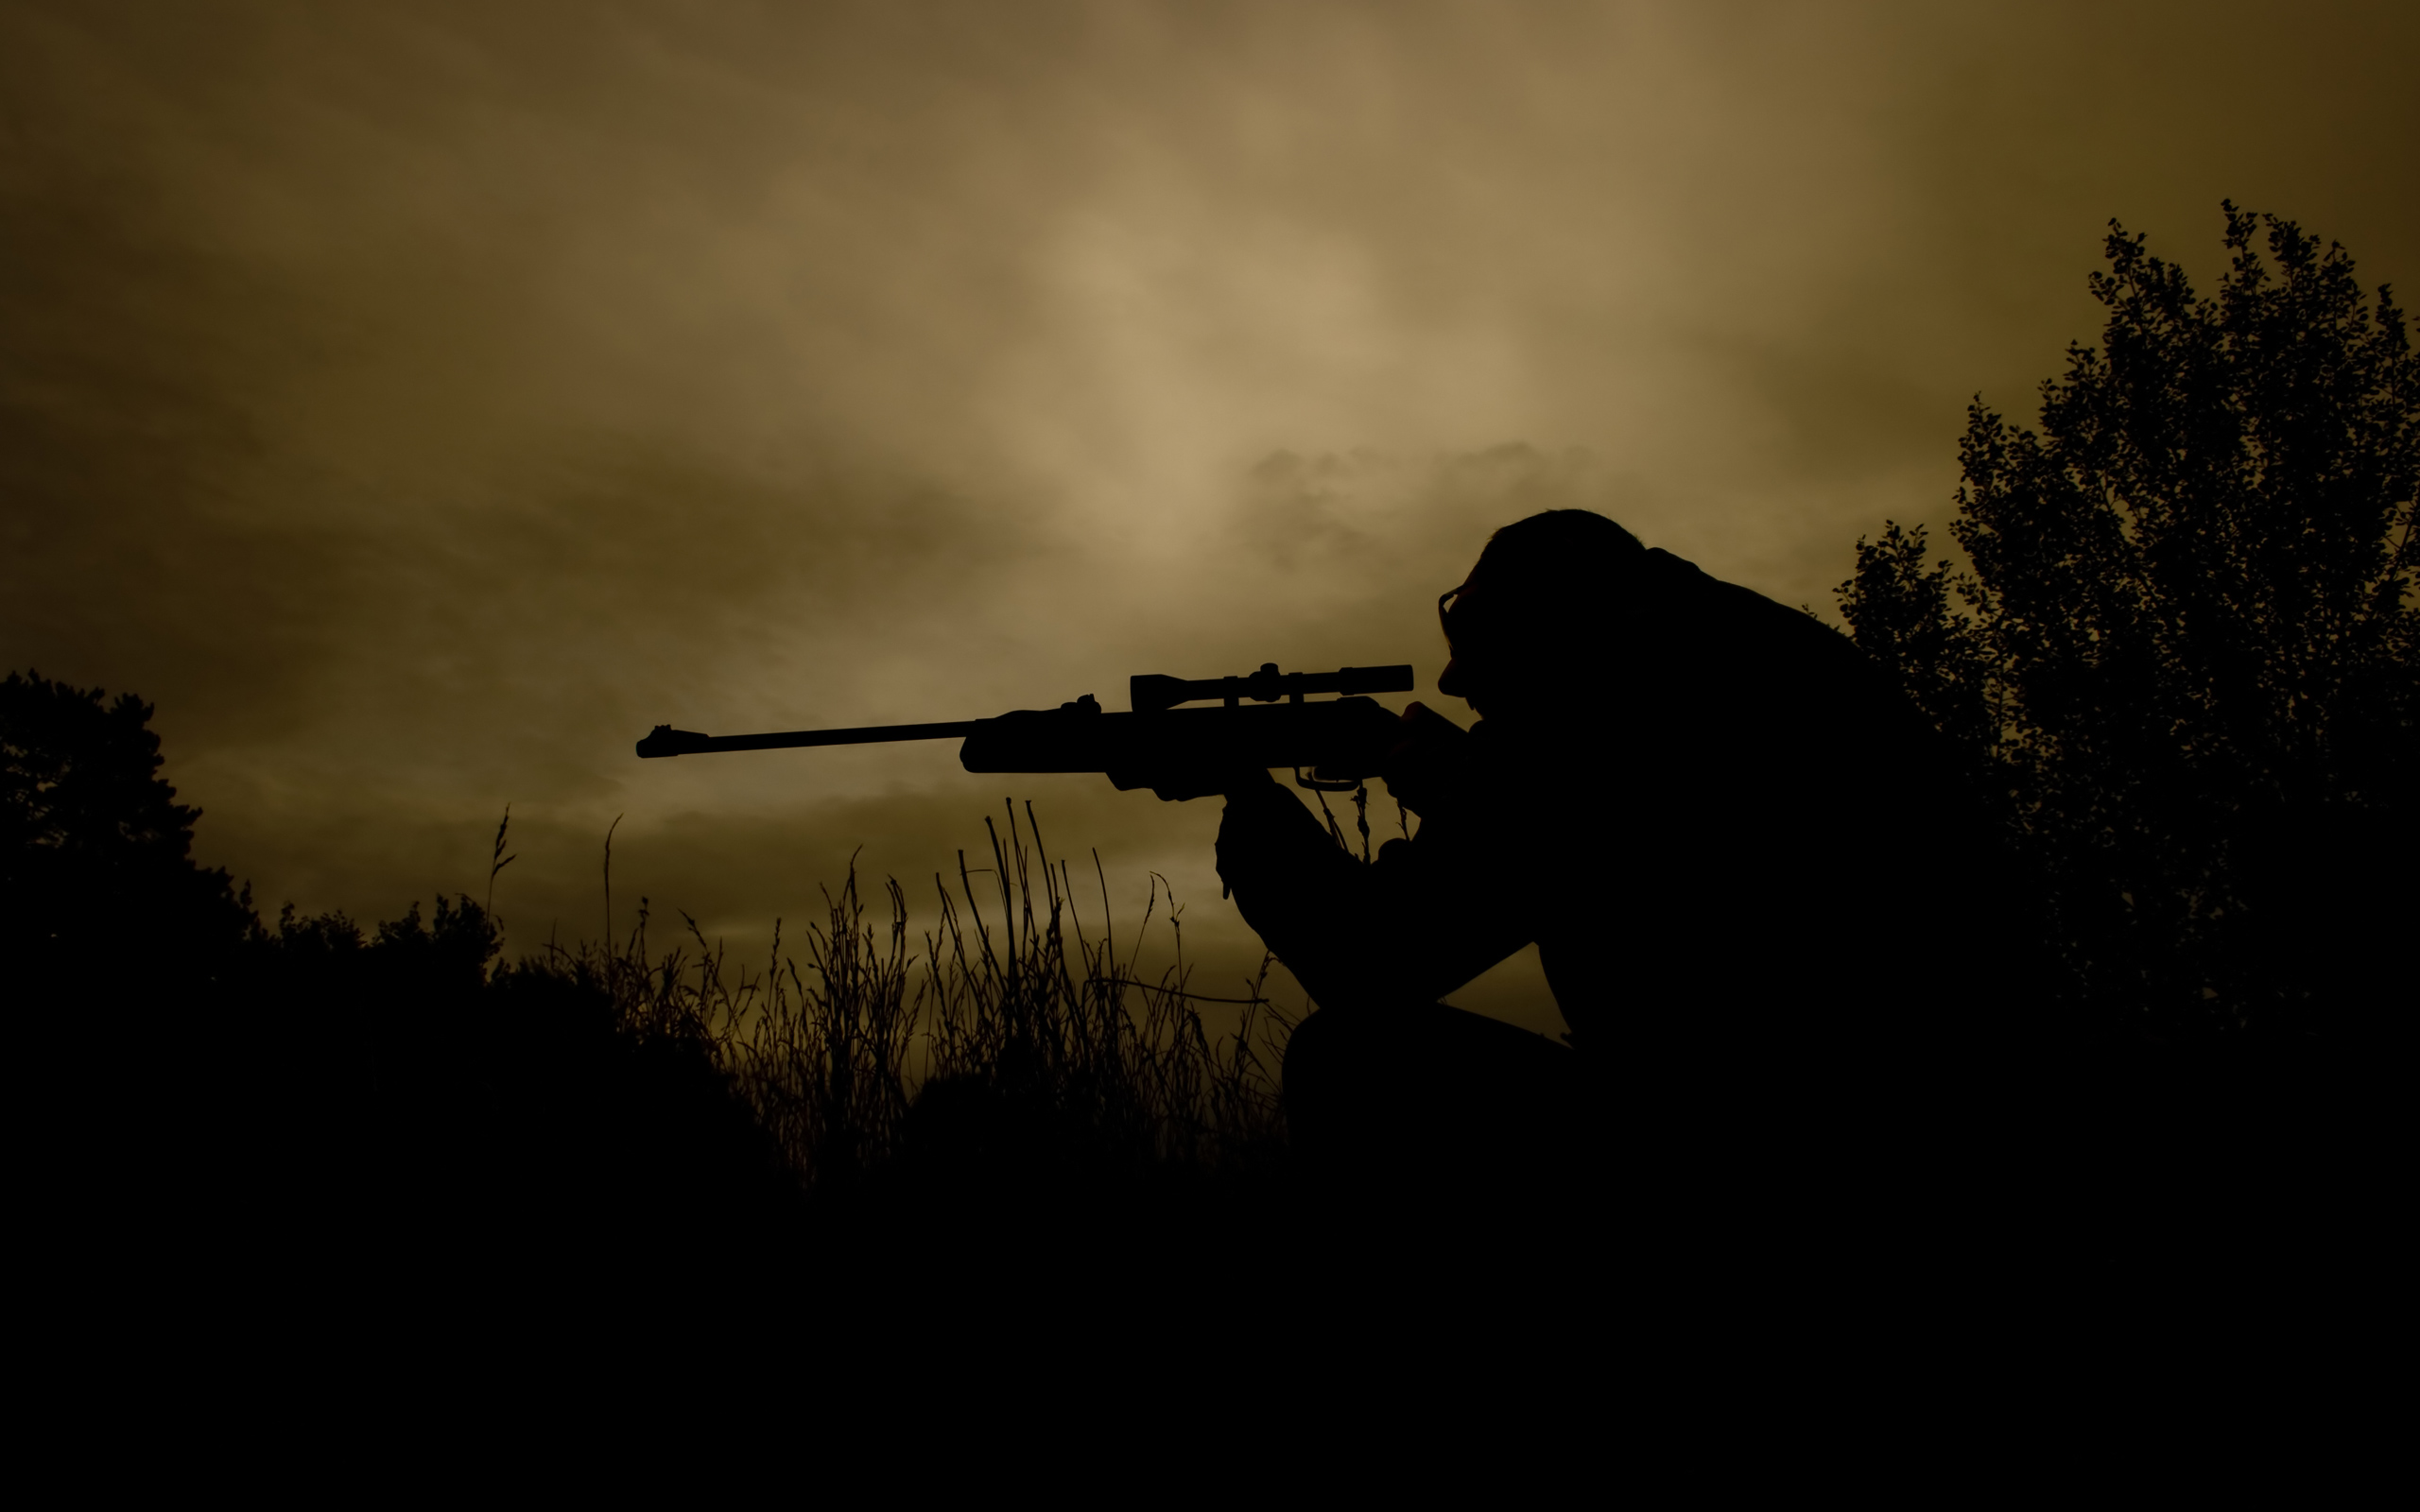 women army sniper wallpaper - photo #30